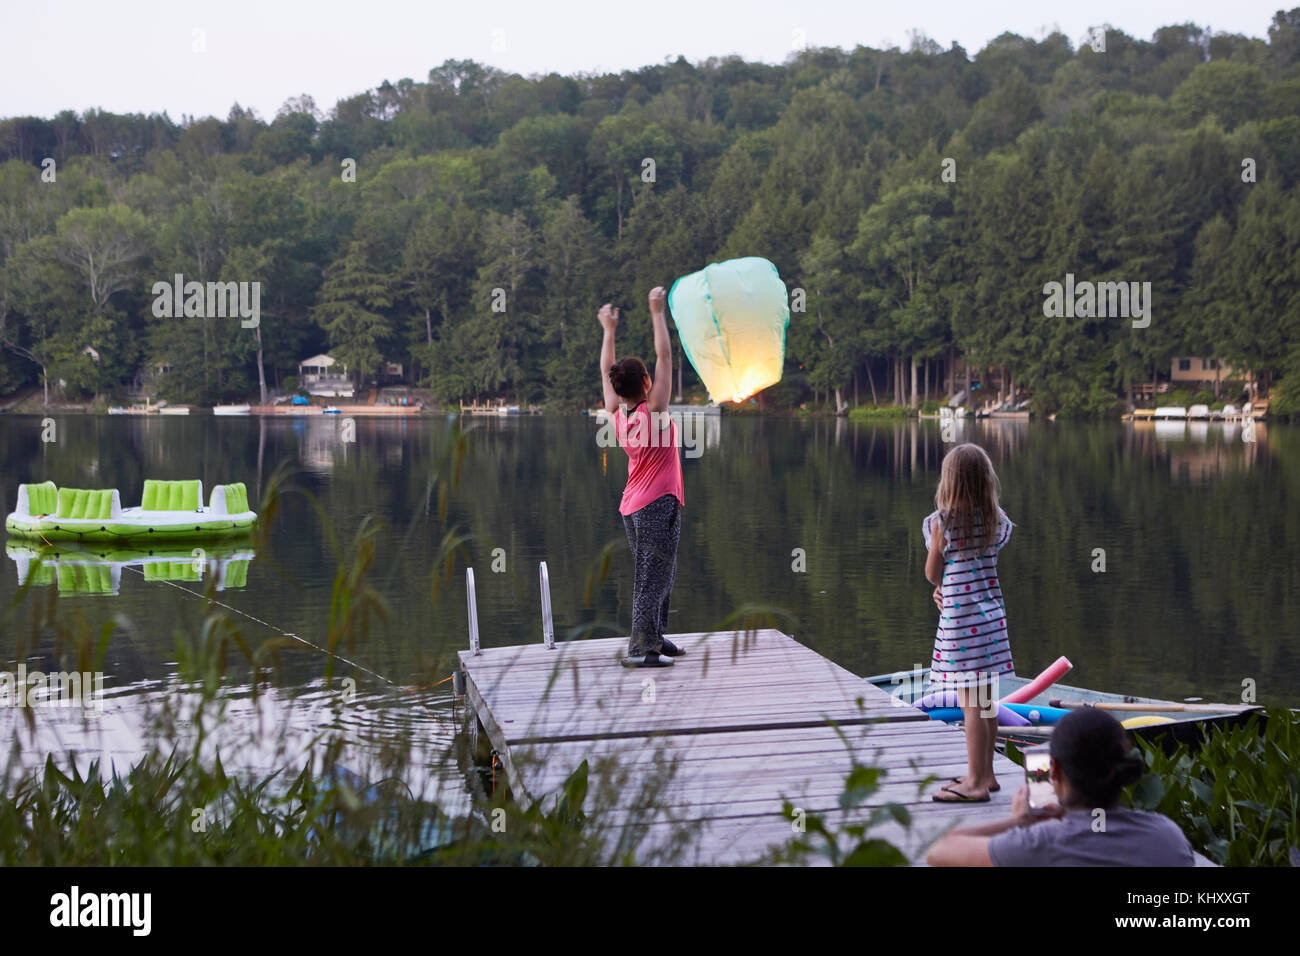 Girl standing on jetty releasing sky lantern, young girl watching, woman photographing event using smartphone Stock Photo